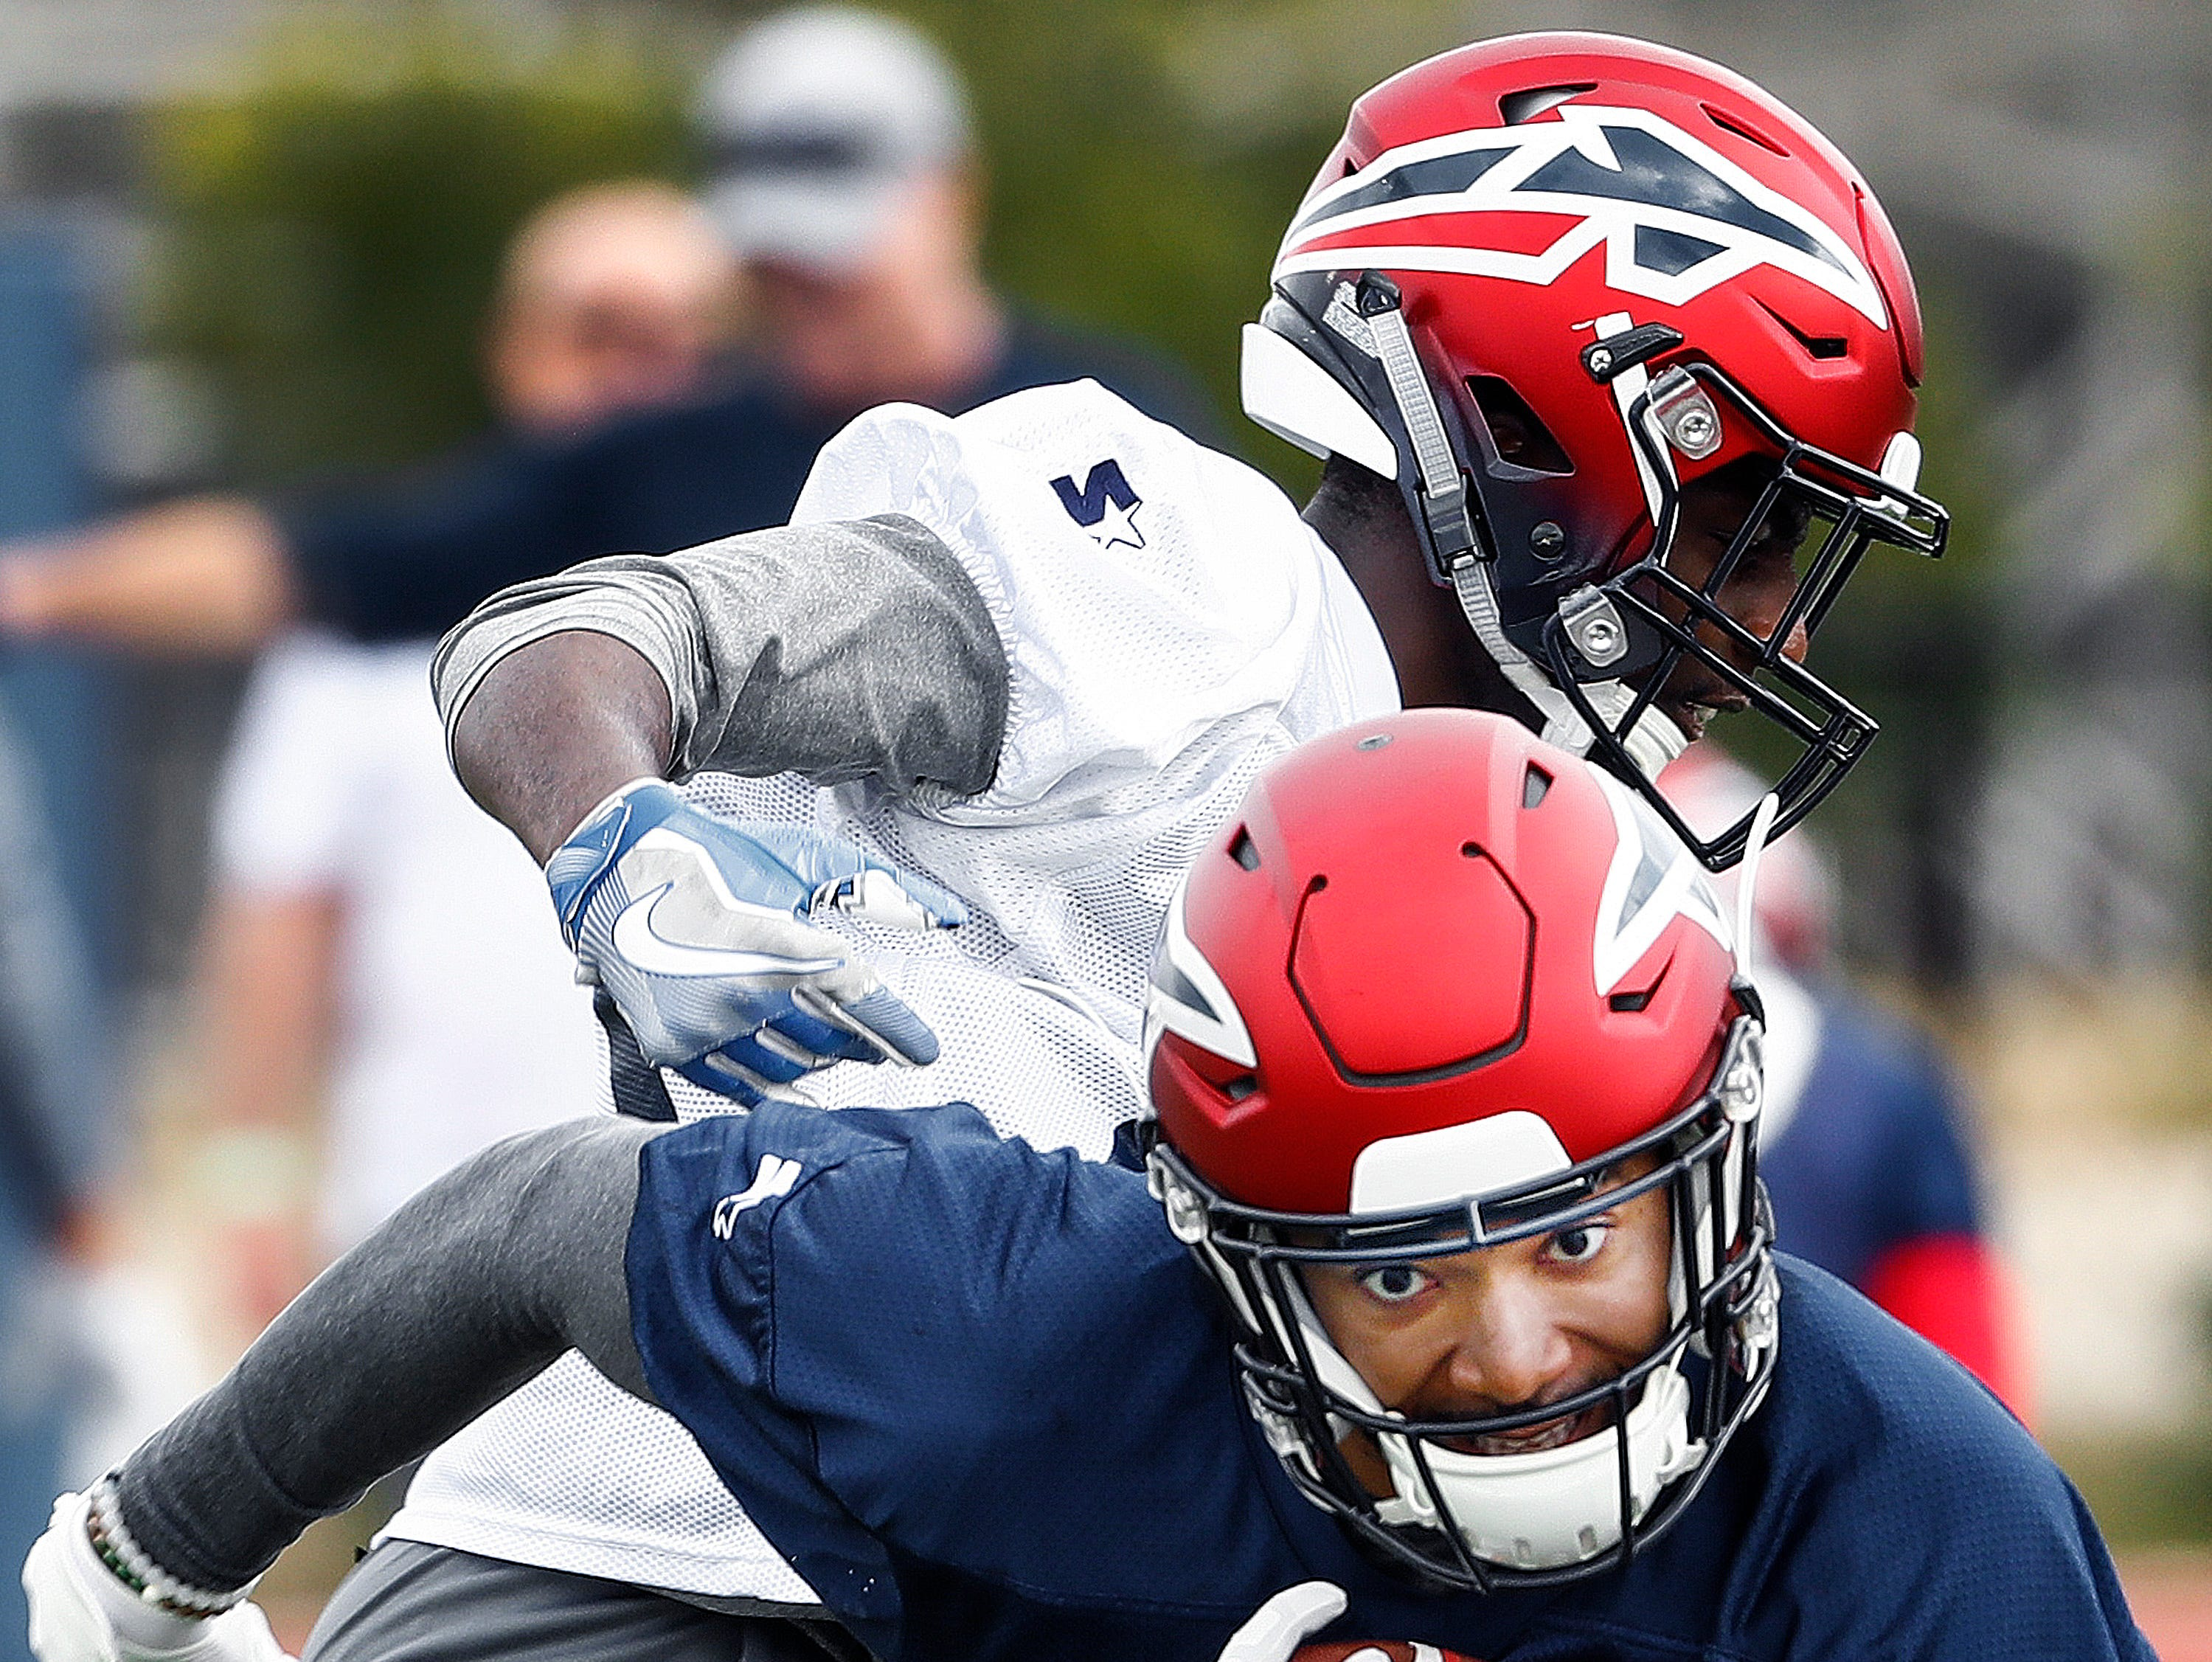 Memphis Express receiver Gerrard Sheppard (front) makes a catch in front of defender Jahmahl Pardner (back) during training camp in San Antonio, Texas.